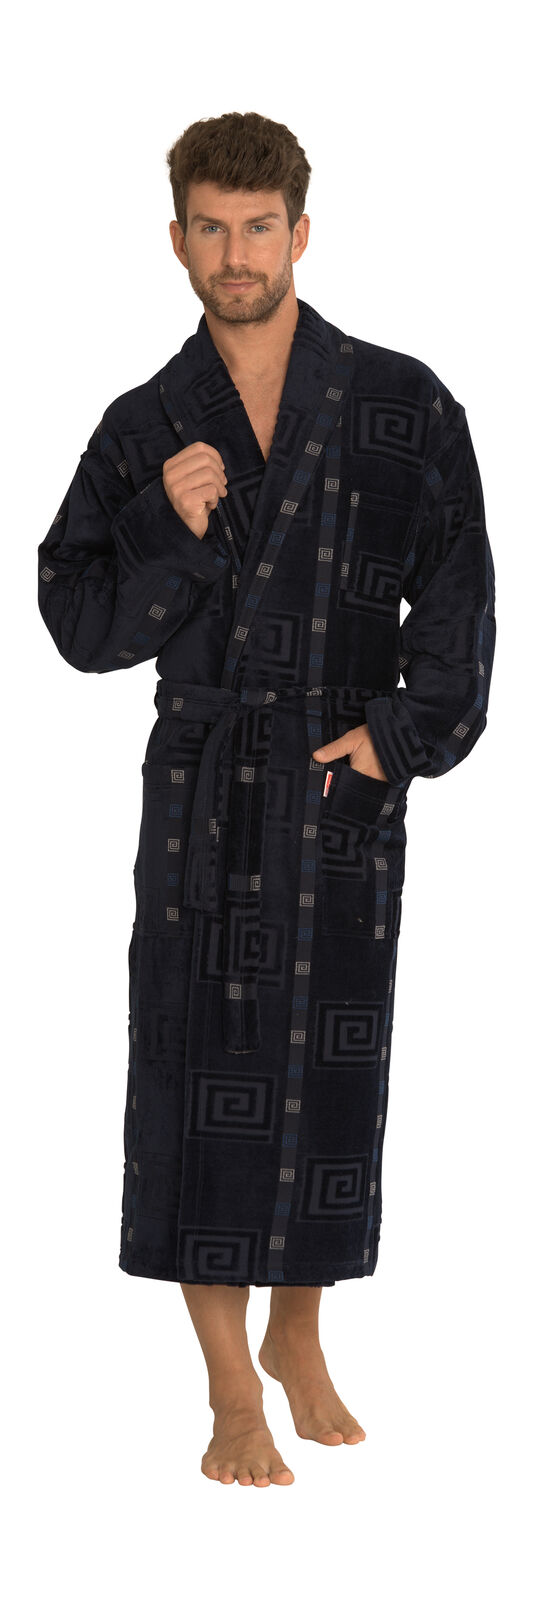 Mens Soft Warm Cotton Self Tie Long Bathrobe Dressing Gown Loungewear